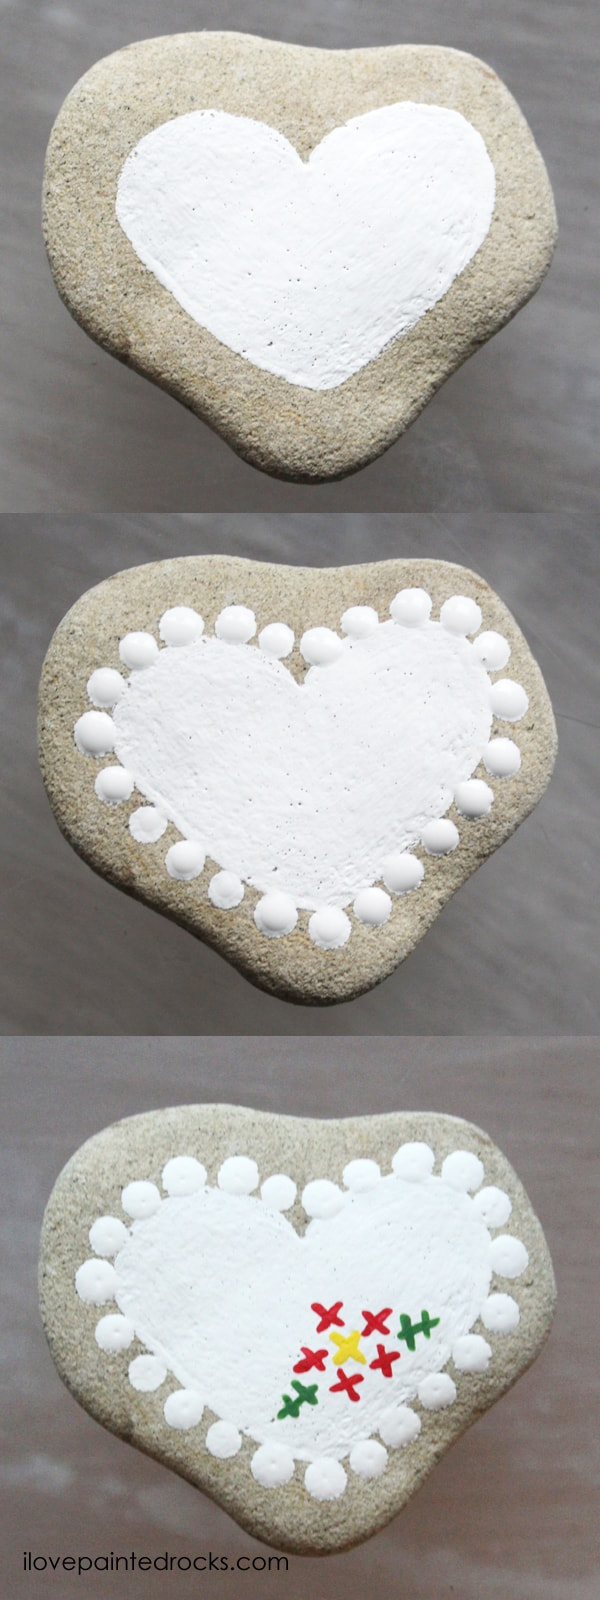 Easy rock painting ideas for Valentine's Day. I love all the painted rock tutorials in this post! Learn how to paint a heart that looks like it has been embroidered or cross stitched on a rock. #ilovepaintedrocks #rockpainting #paintedrocks #valentinescraft #easycraft #kidscraft #rockpaintingideas #crossstitch #embroidery